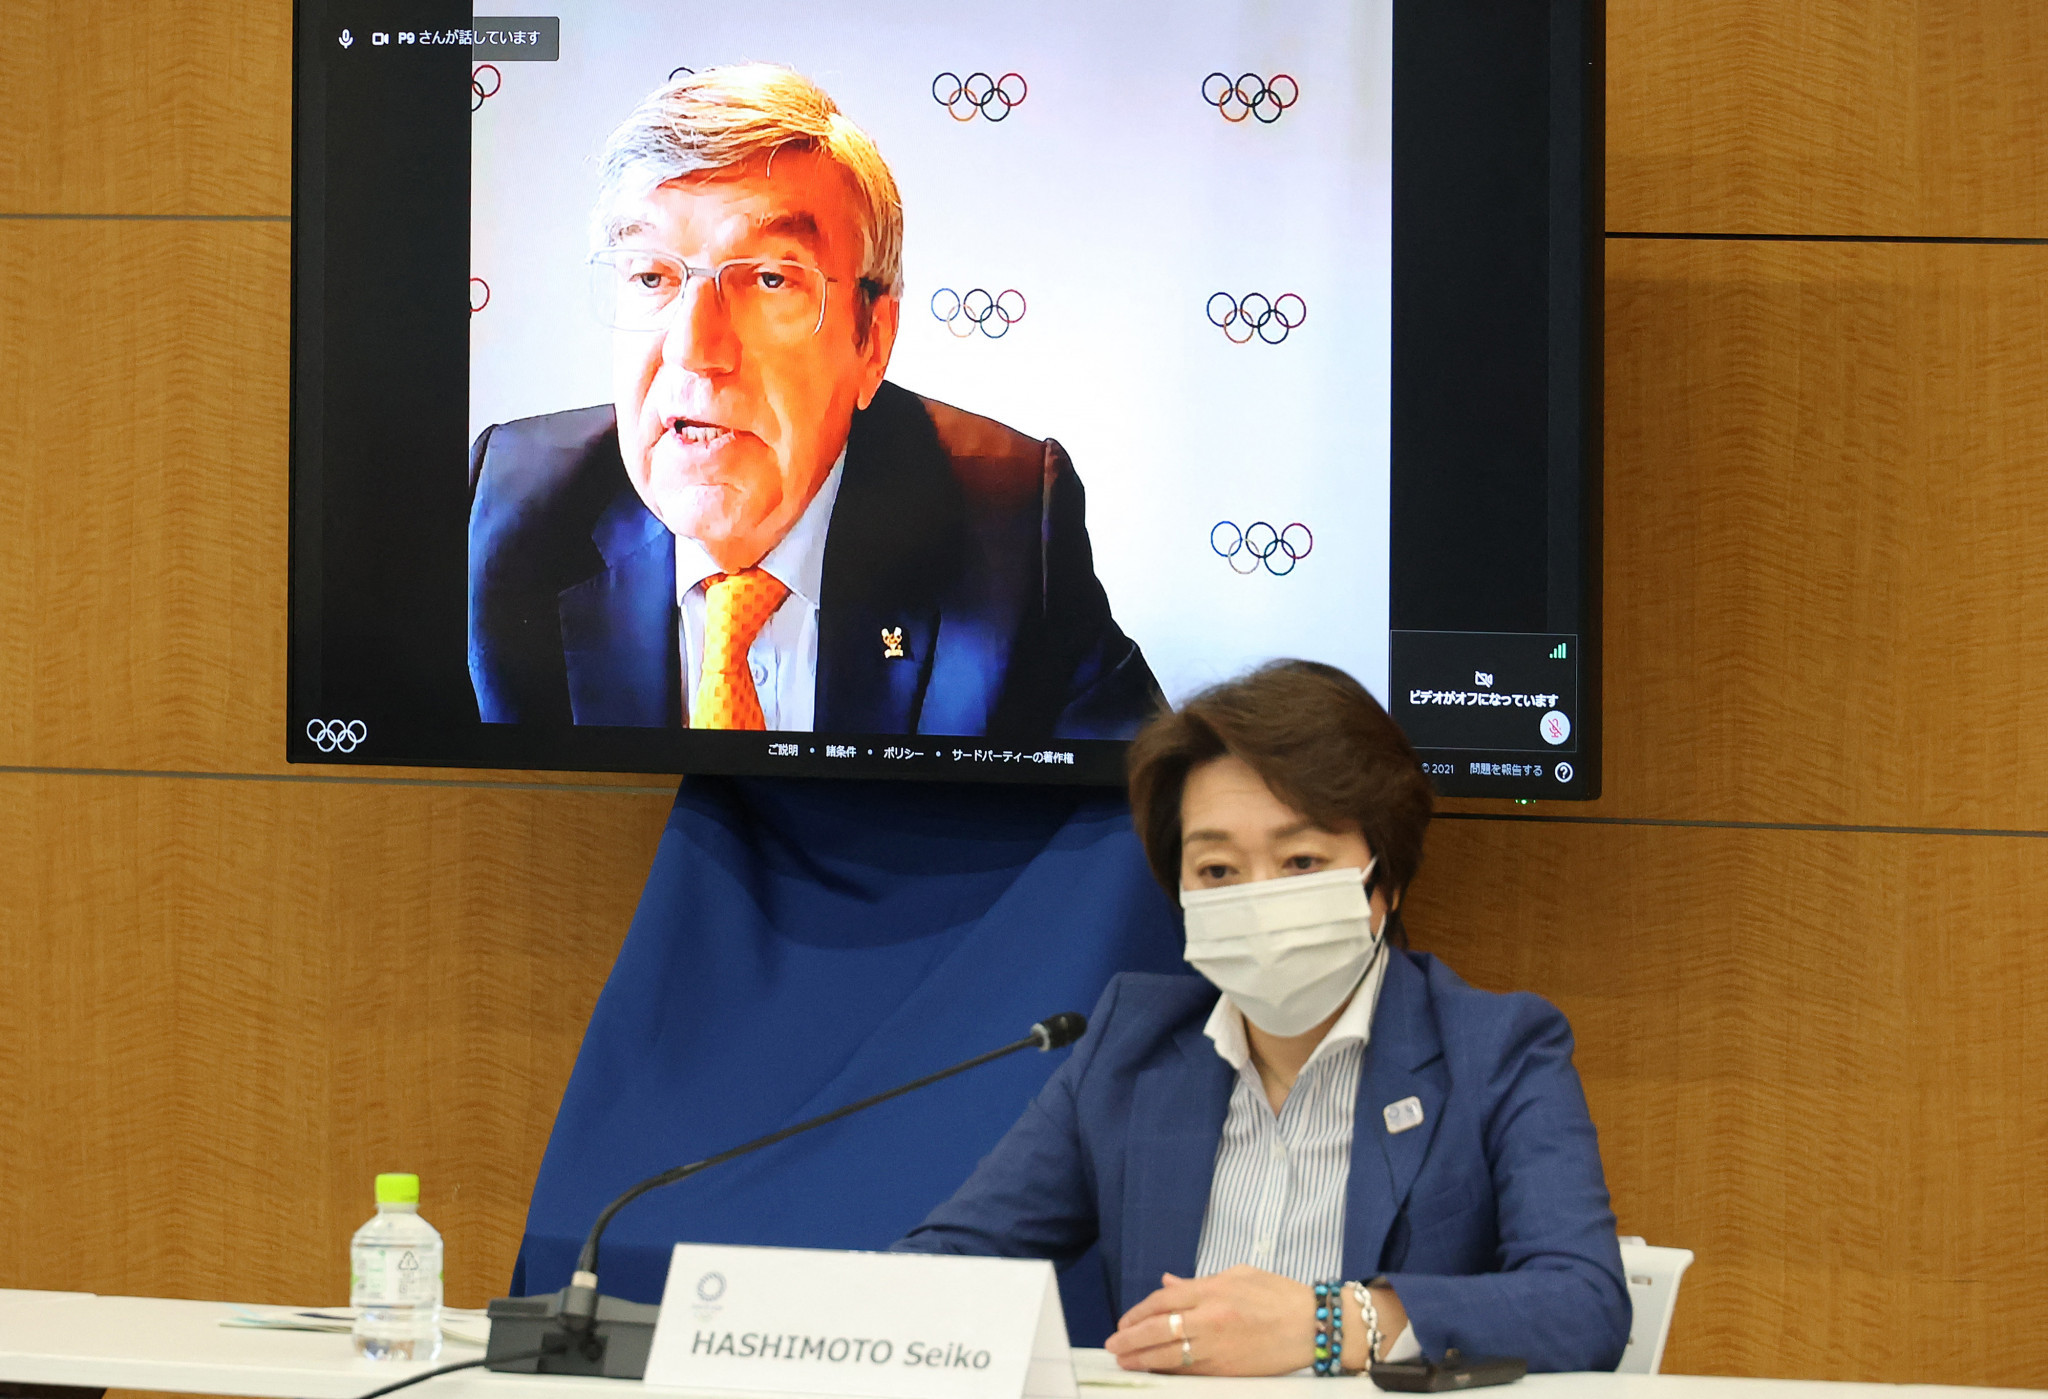 Thomas Bach, top, said discussions had taken pace with Tokyo 2020 over the practicalities of a visit, and it was decided one would not be helpful ©Getty Images